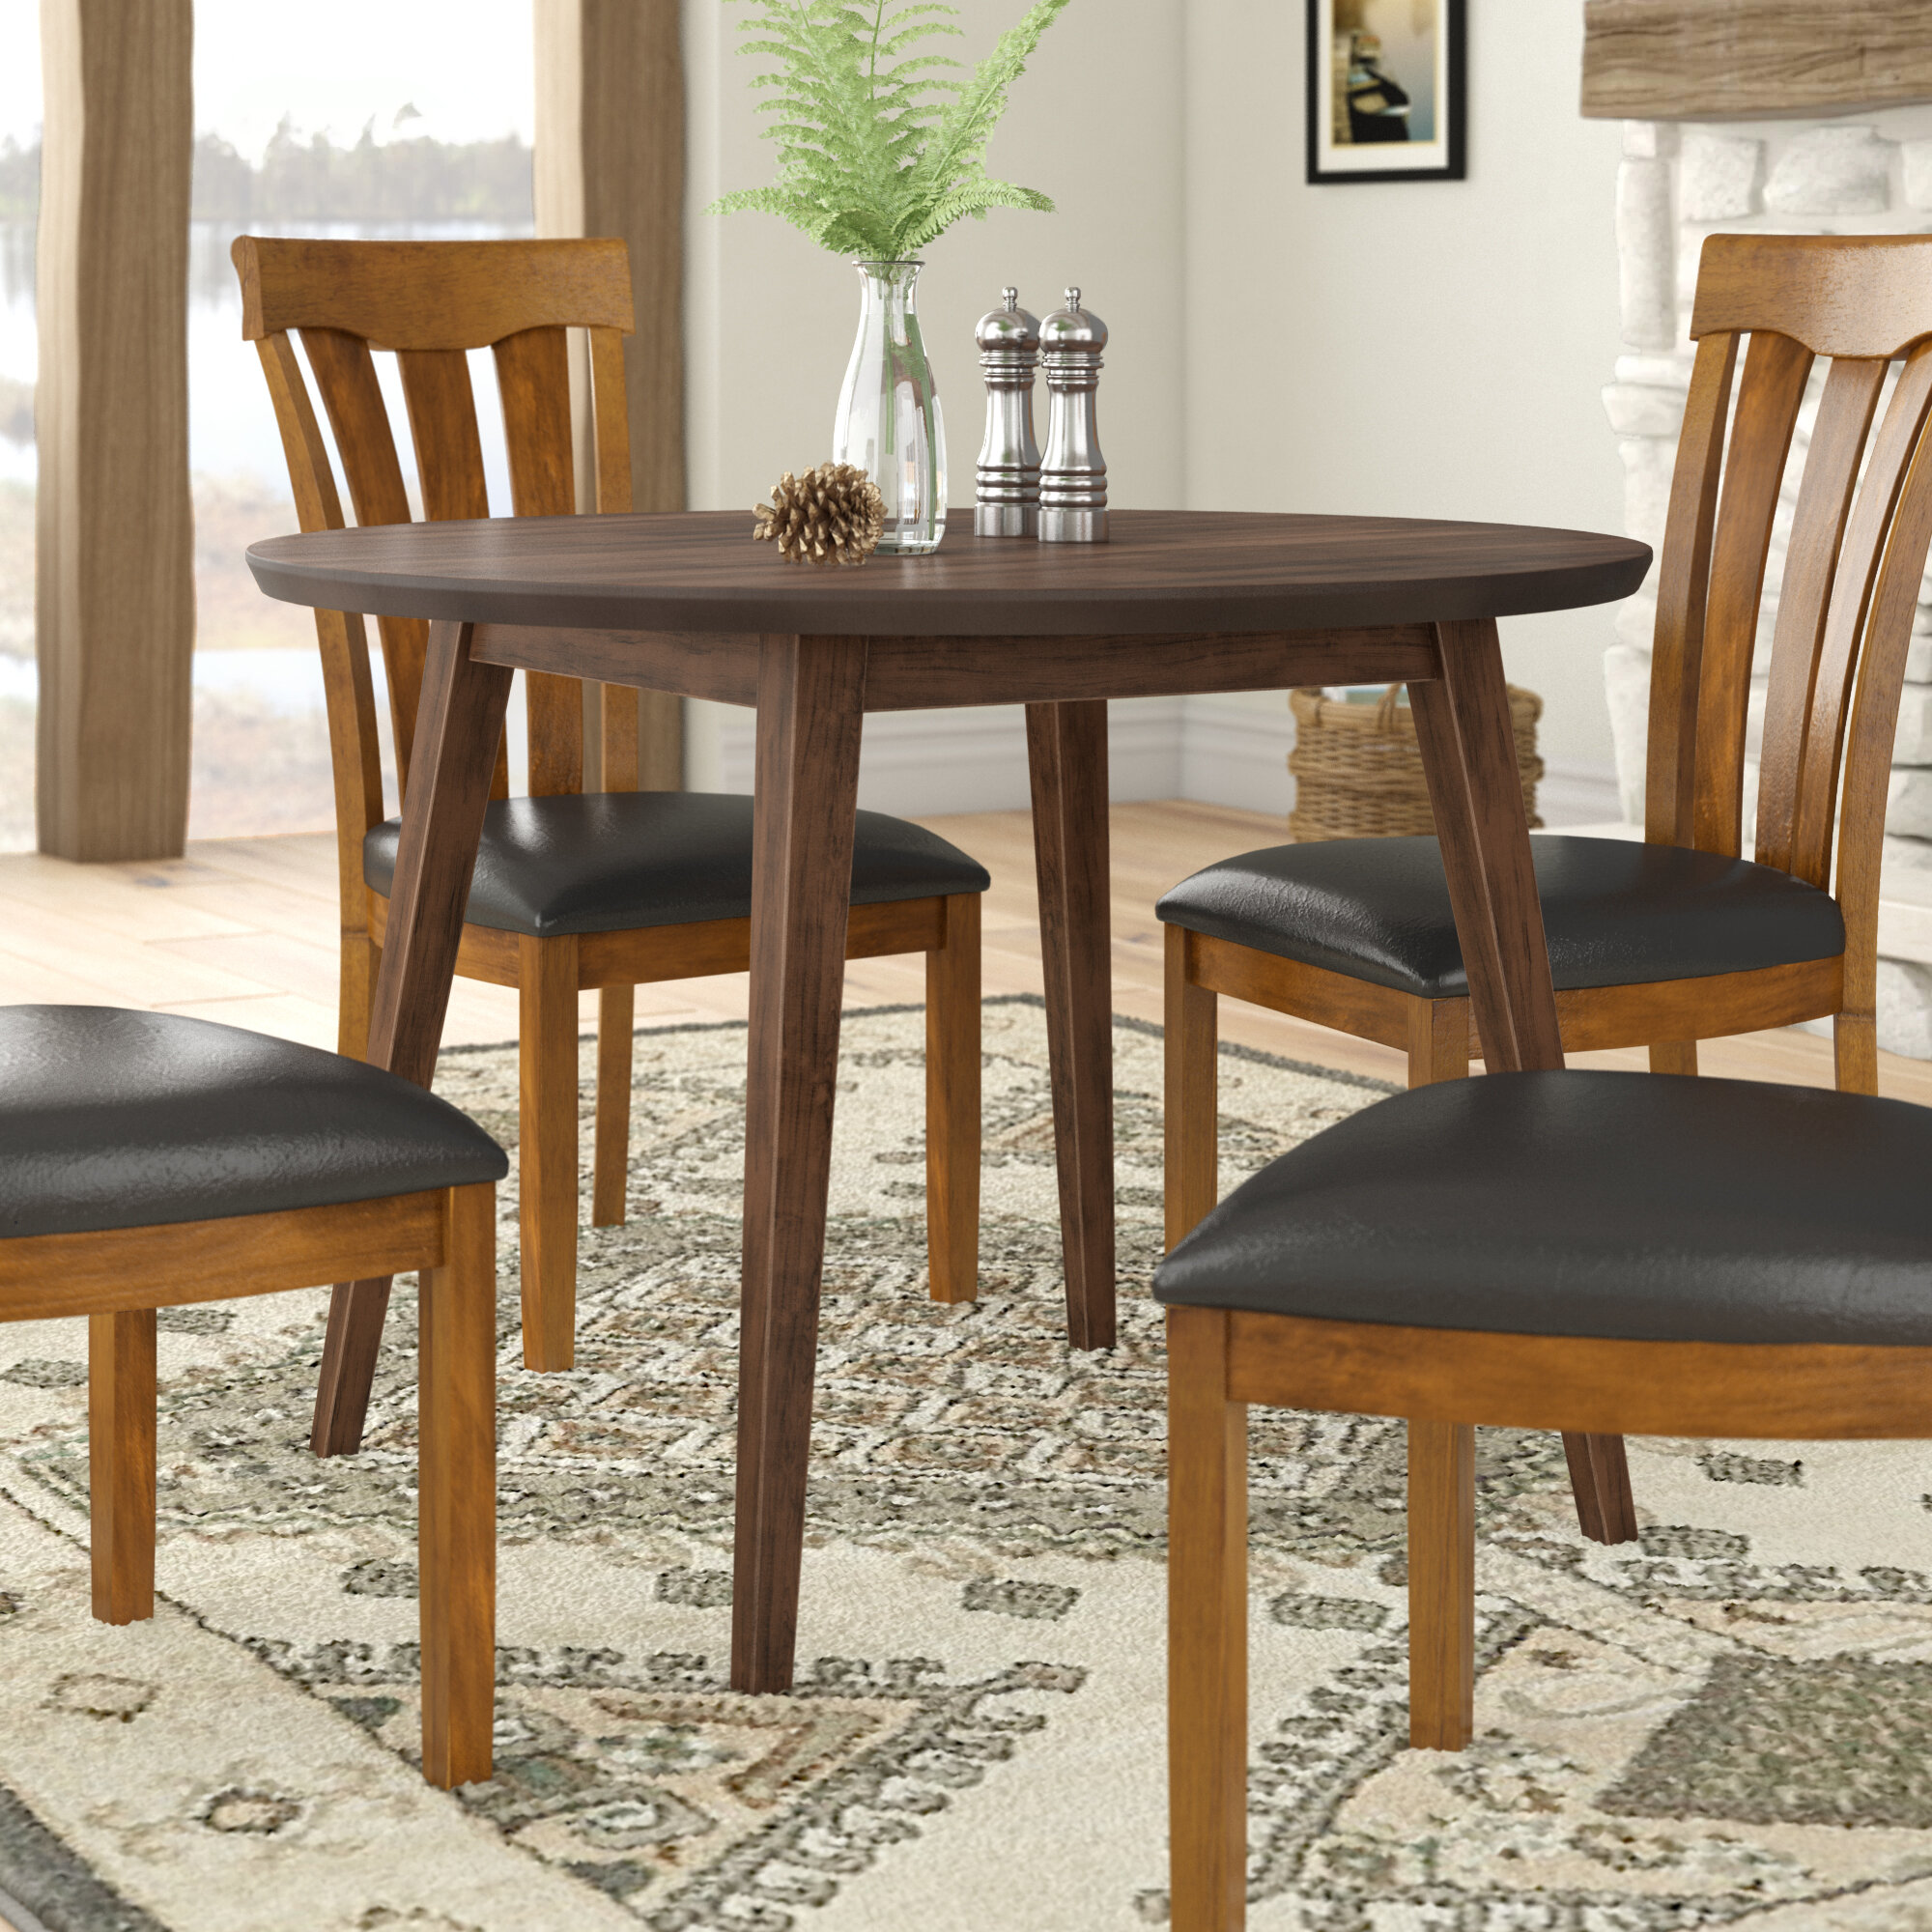 Brown George Oliver Kitchen Dining Tables You Ll Love In 2021 Wayfair